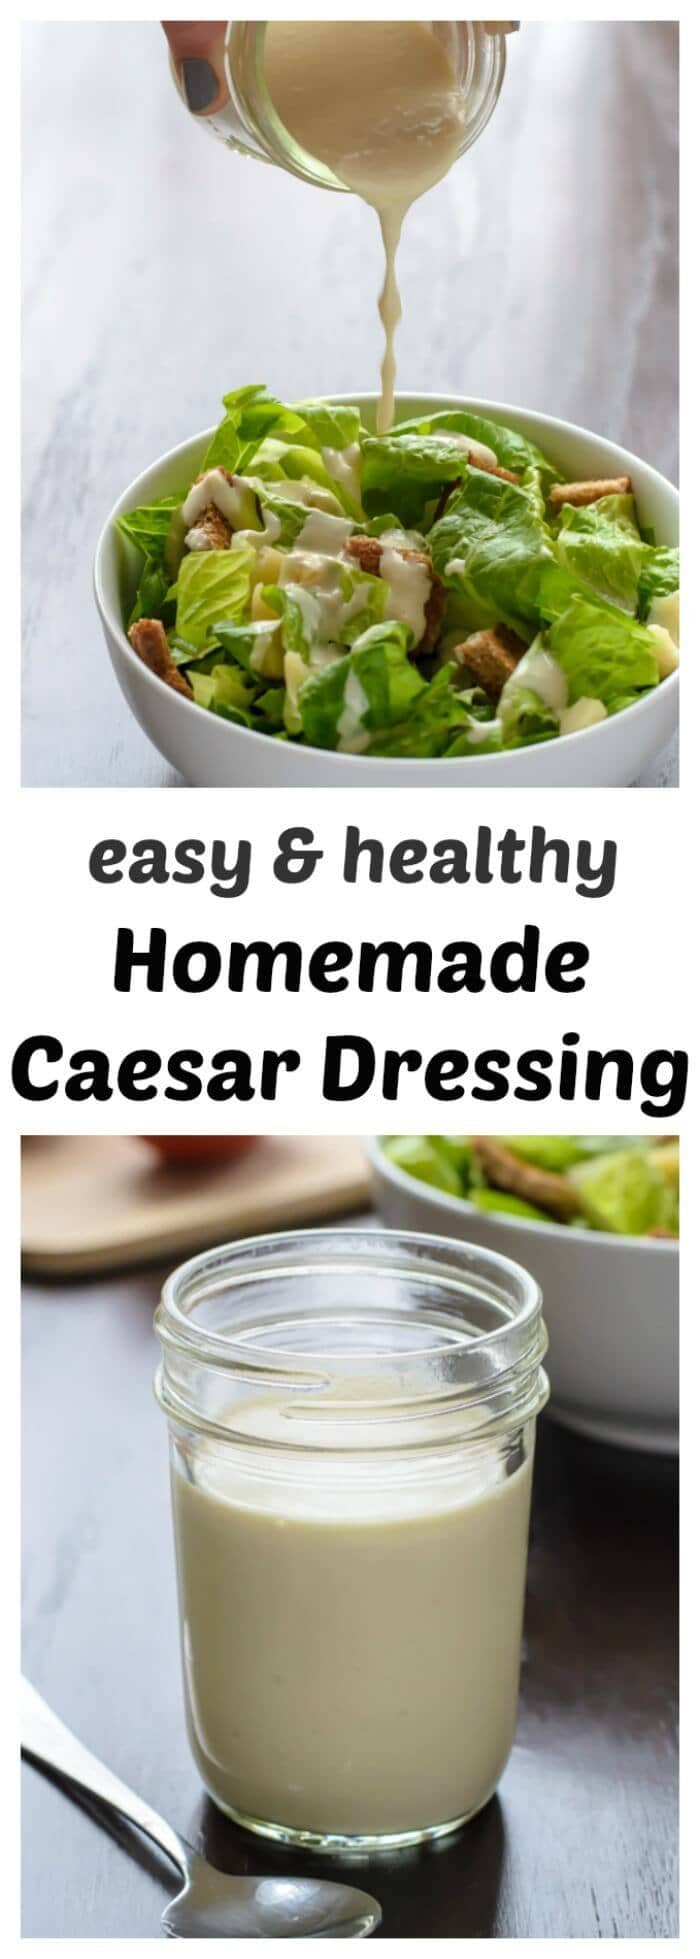 An easy and healthy homemade Caesar dressing that uses Greek yogurt. All the flavor of Caesar, without the guilt!